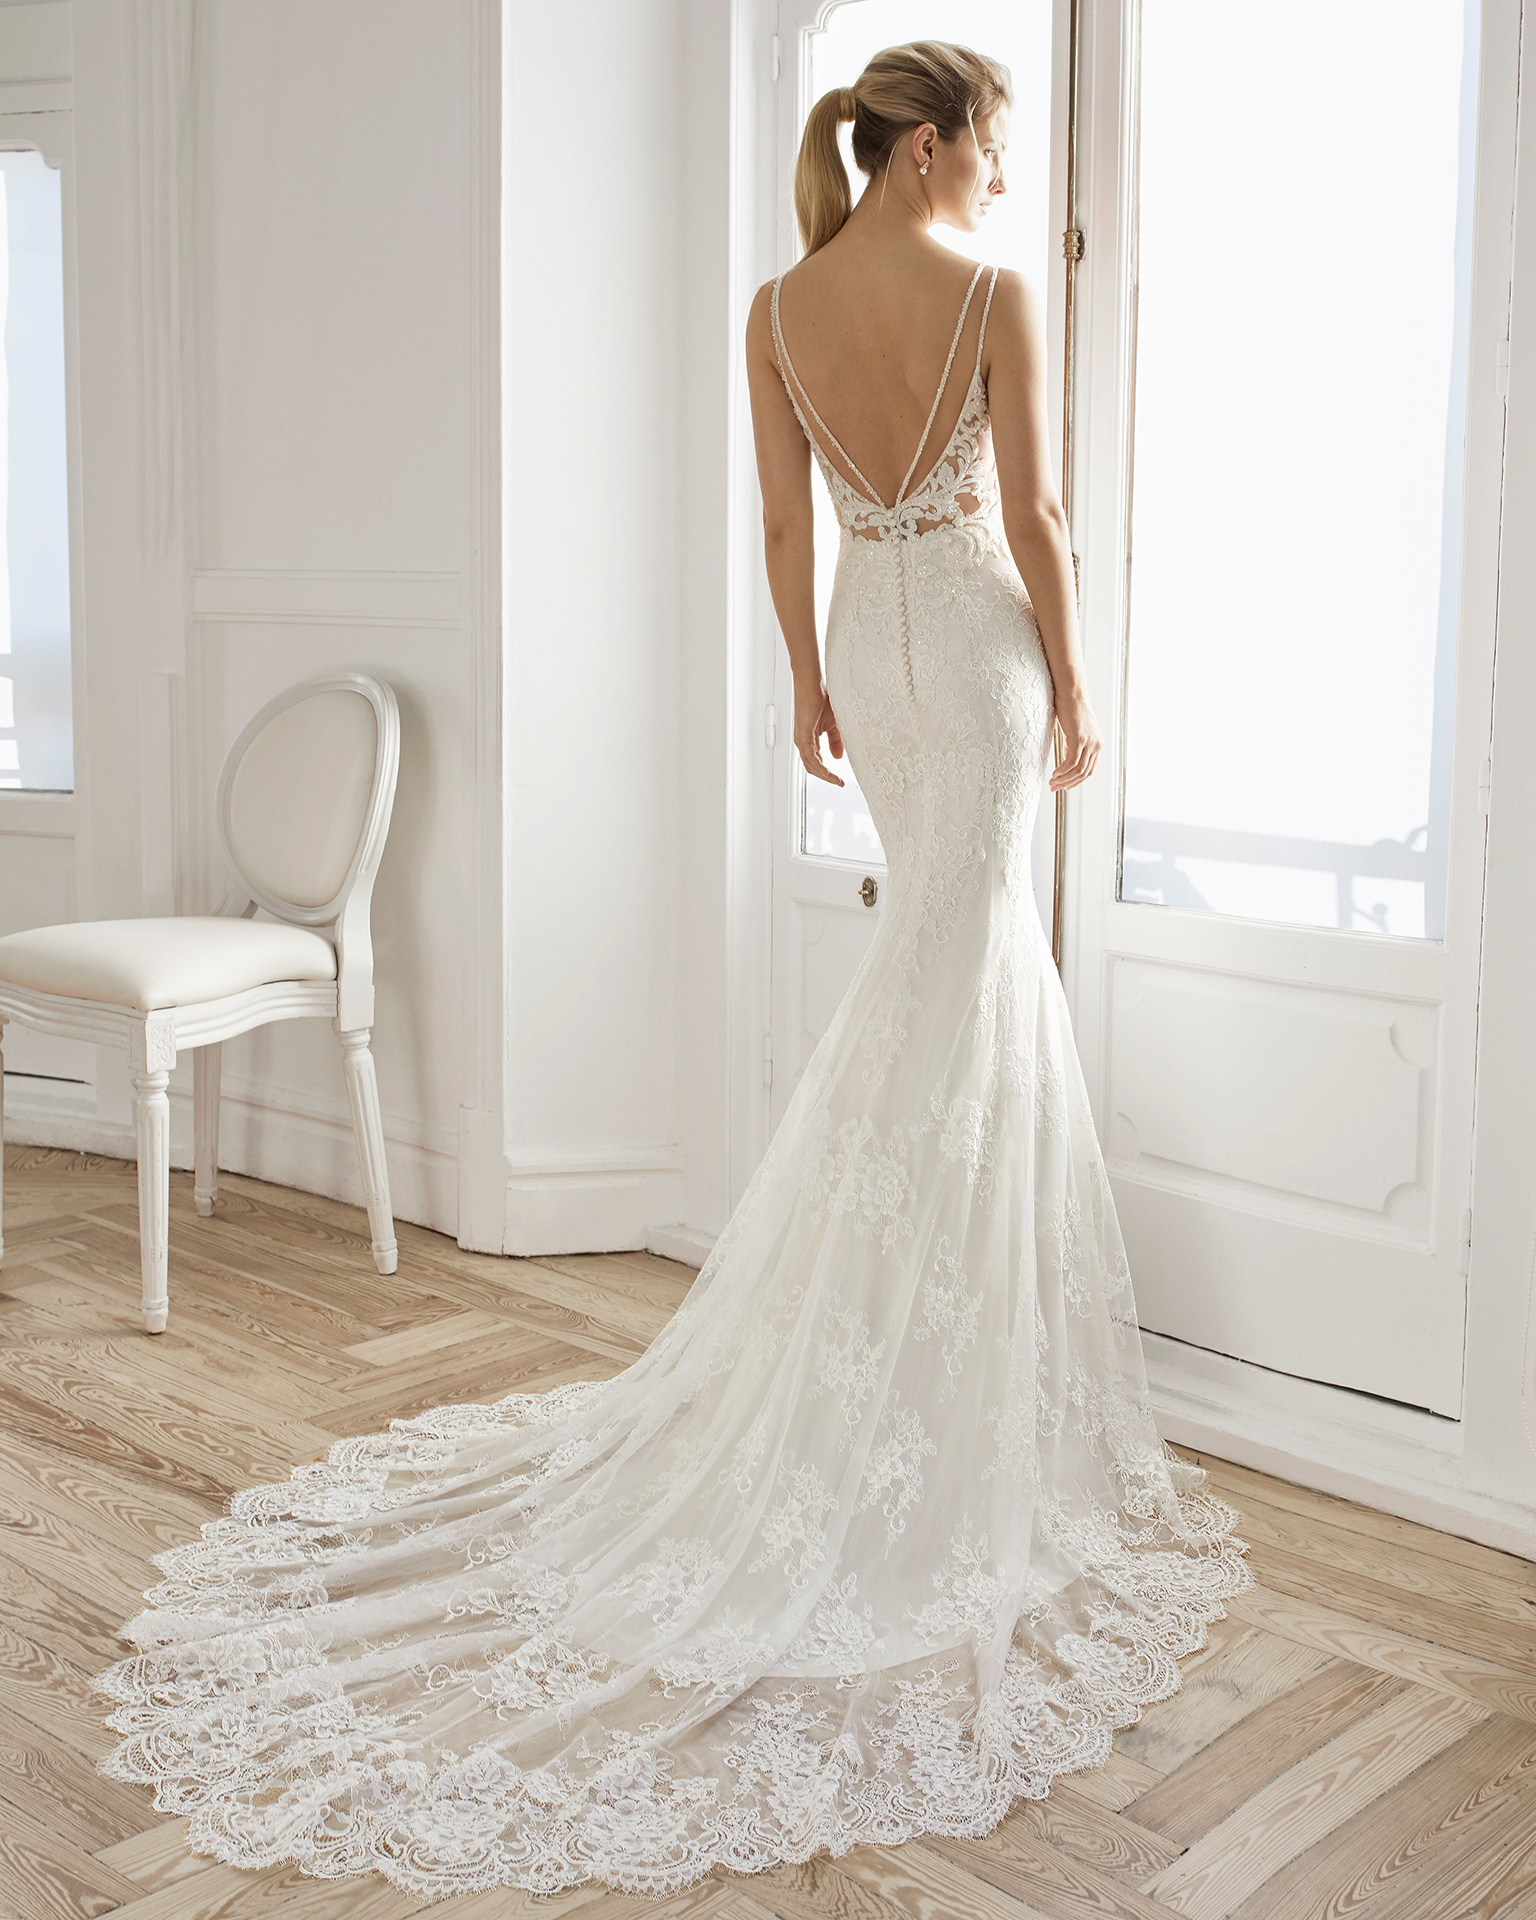 Mermaid-style wedding dress in beaded lace. Deep-plunge neckline with beaded straps and low back. Available in natural. 2019 AIRE BARCELONA Collection.